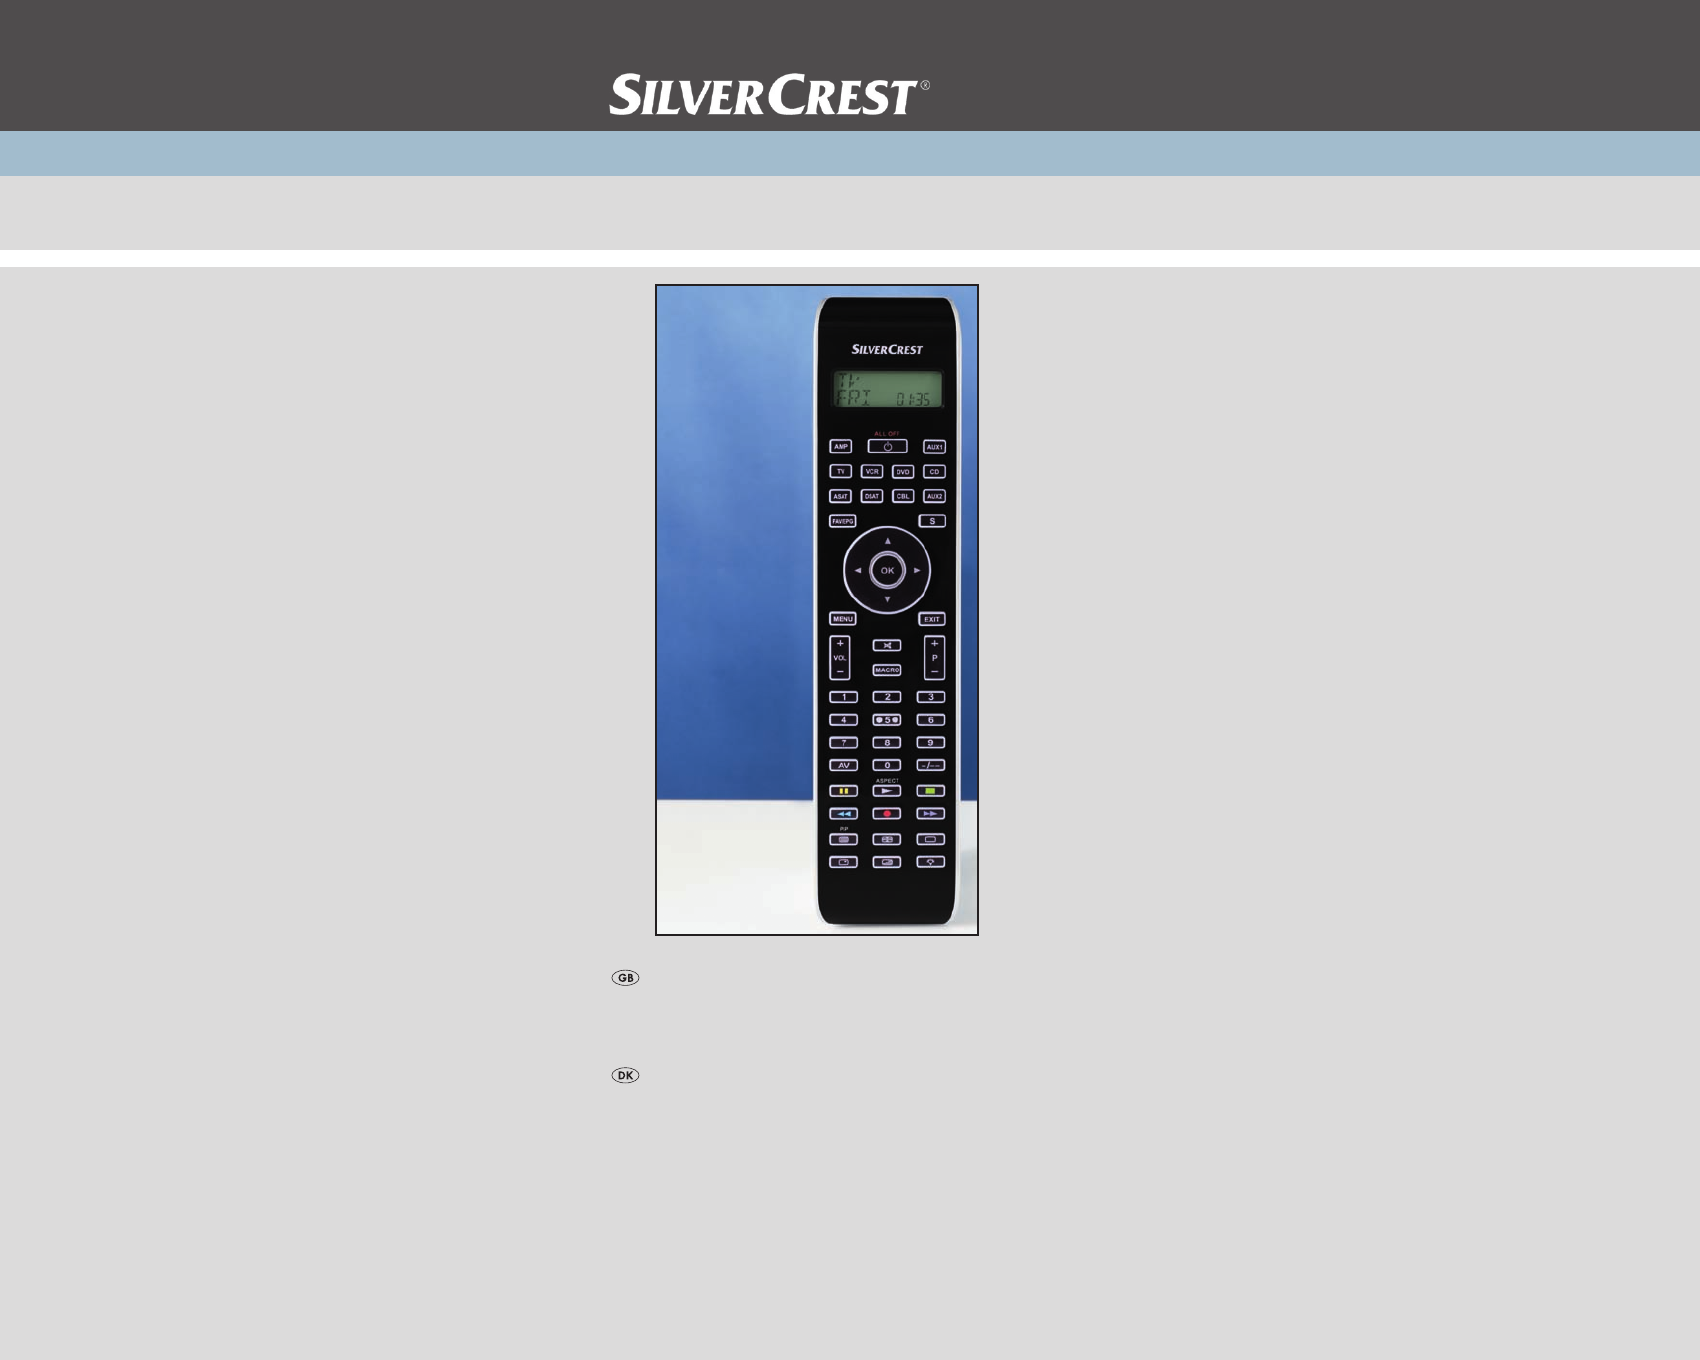 silvercrest universal remote kh 2159 user guide manualsonline com rh tv manualsonline com Nortel Norstar Phone System Manual silvercrest simply talk 100 telephone manual